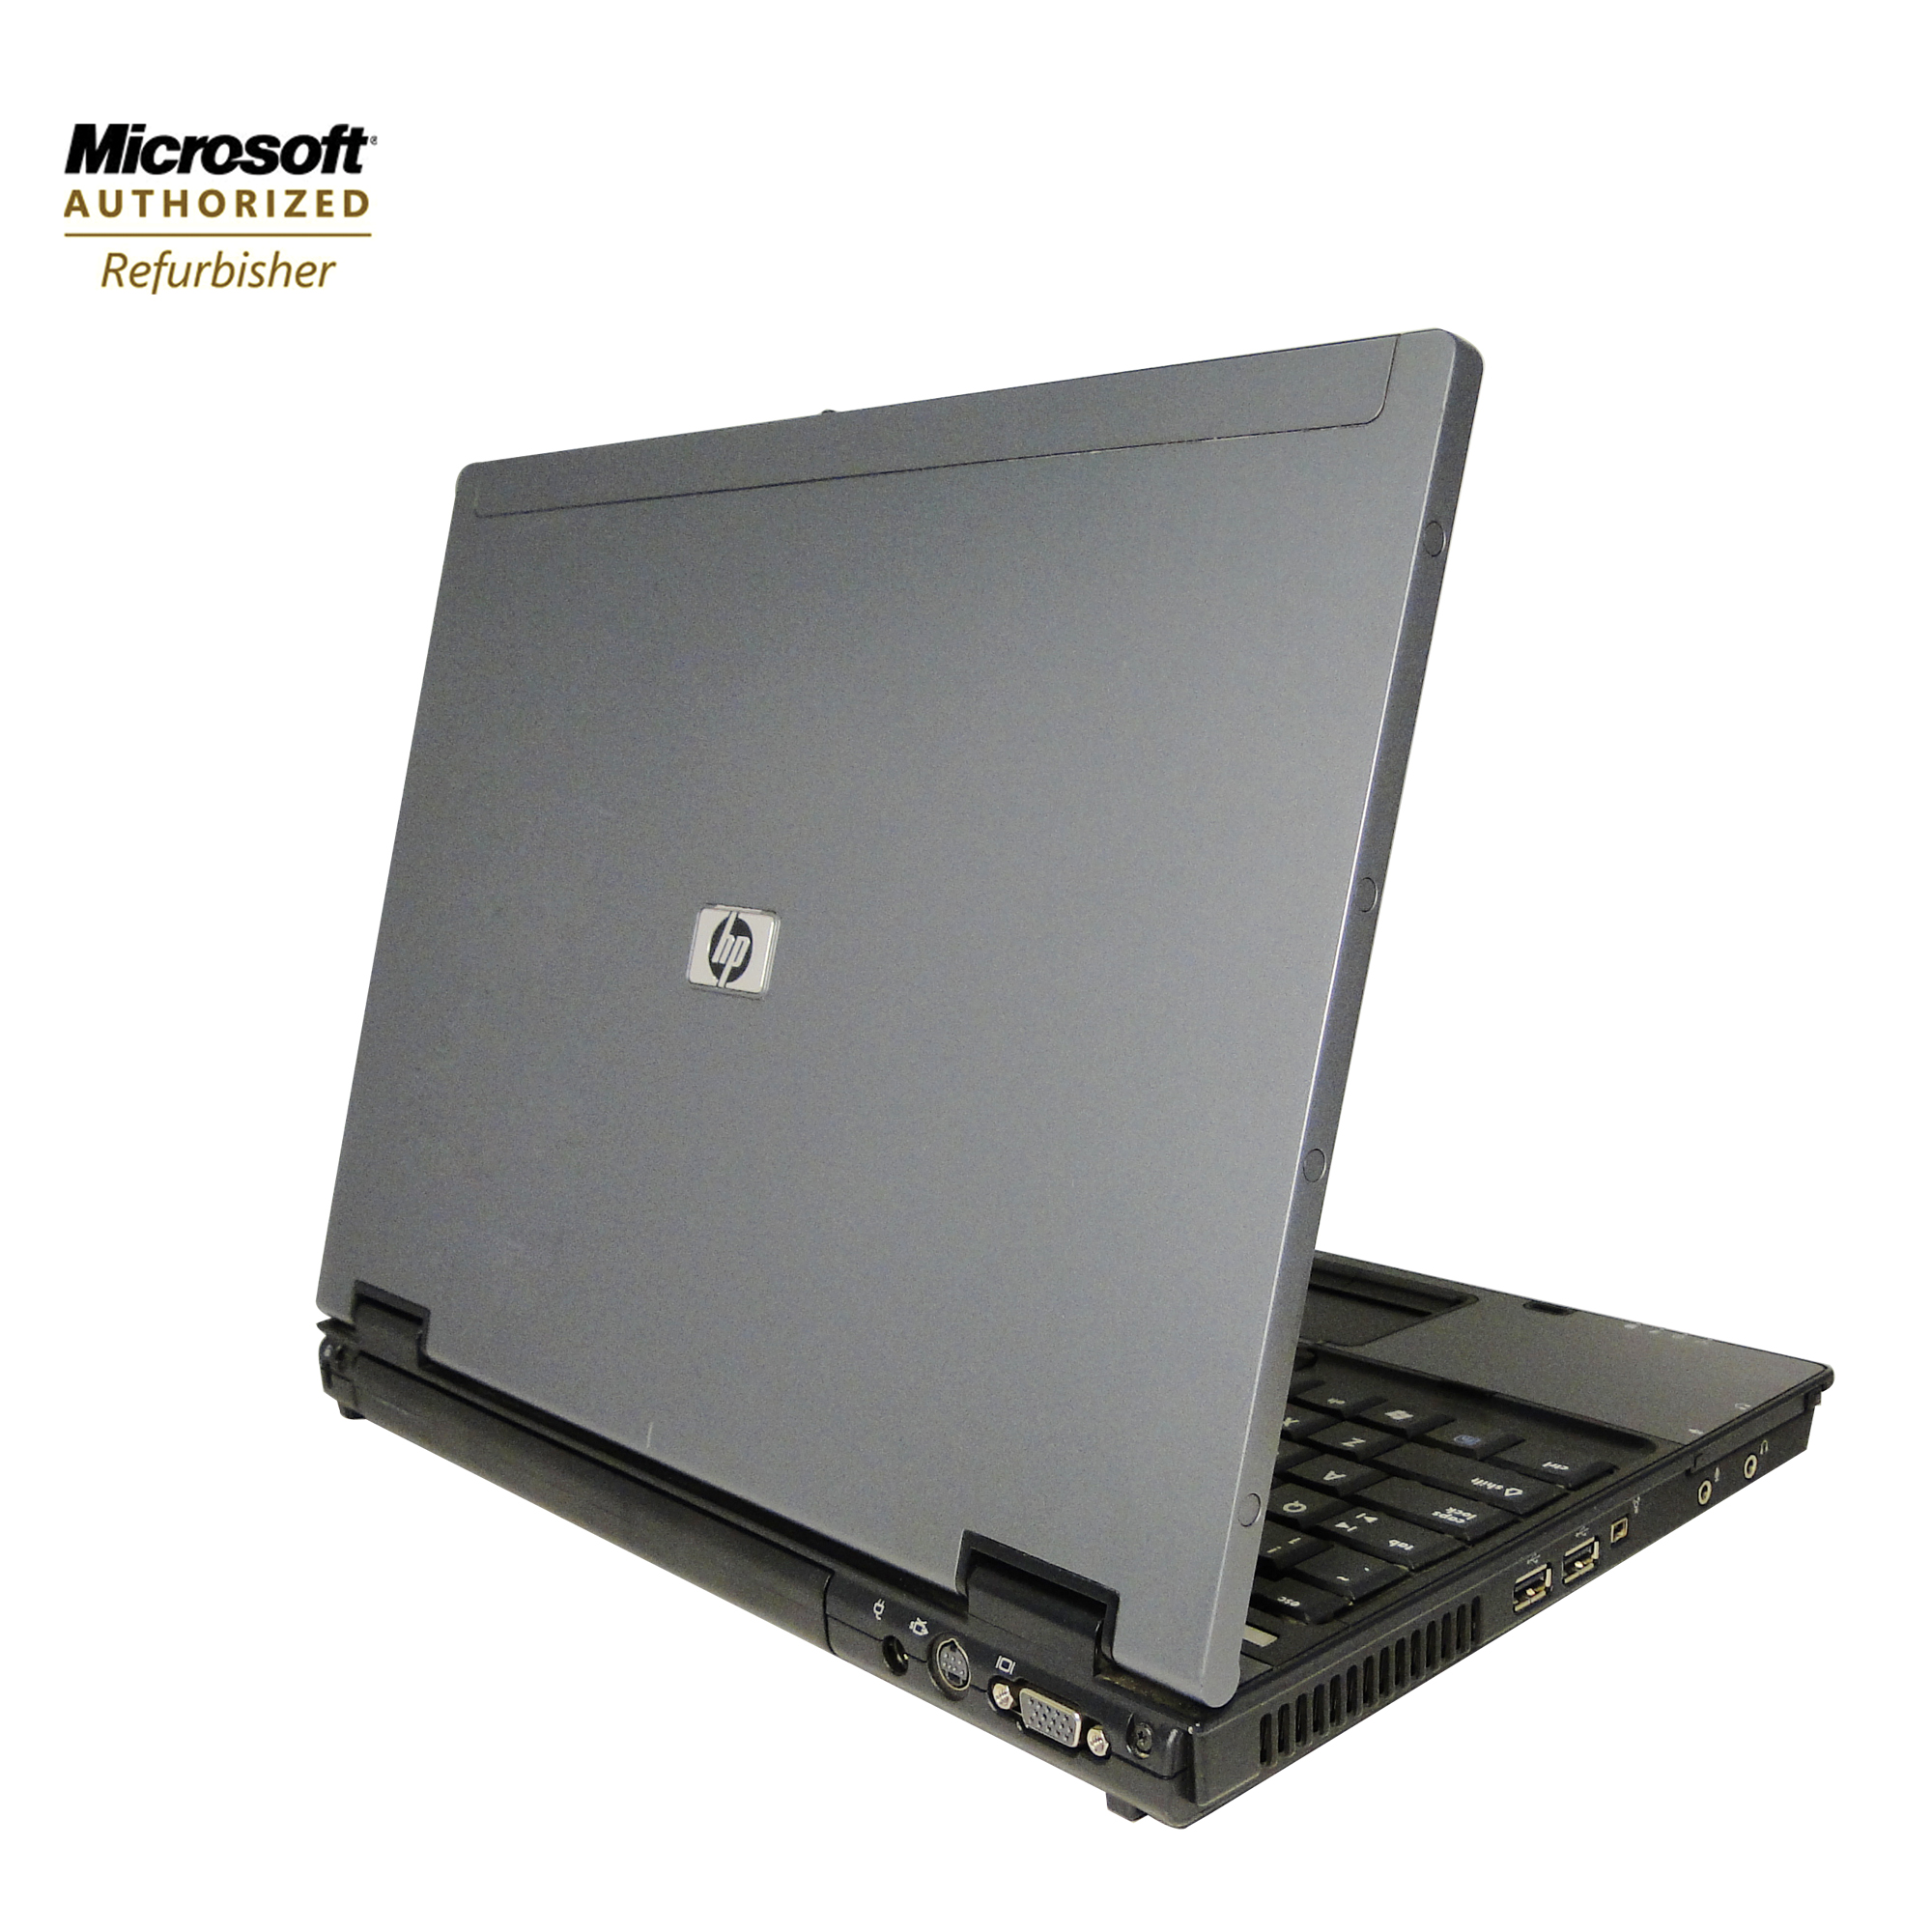 HP 6910P Refurbished 14.1 Laptop, Intel Core2Duo 2GHz, 2GB, 80GB, CDRW/DVD, Windows7 Home Premium